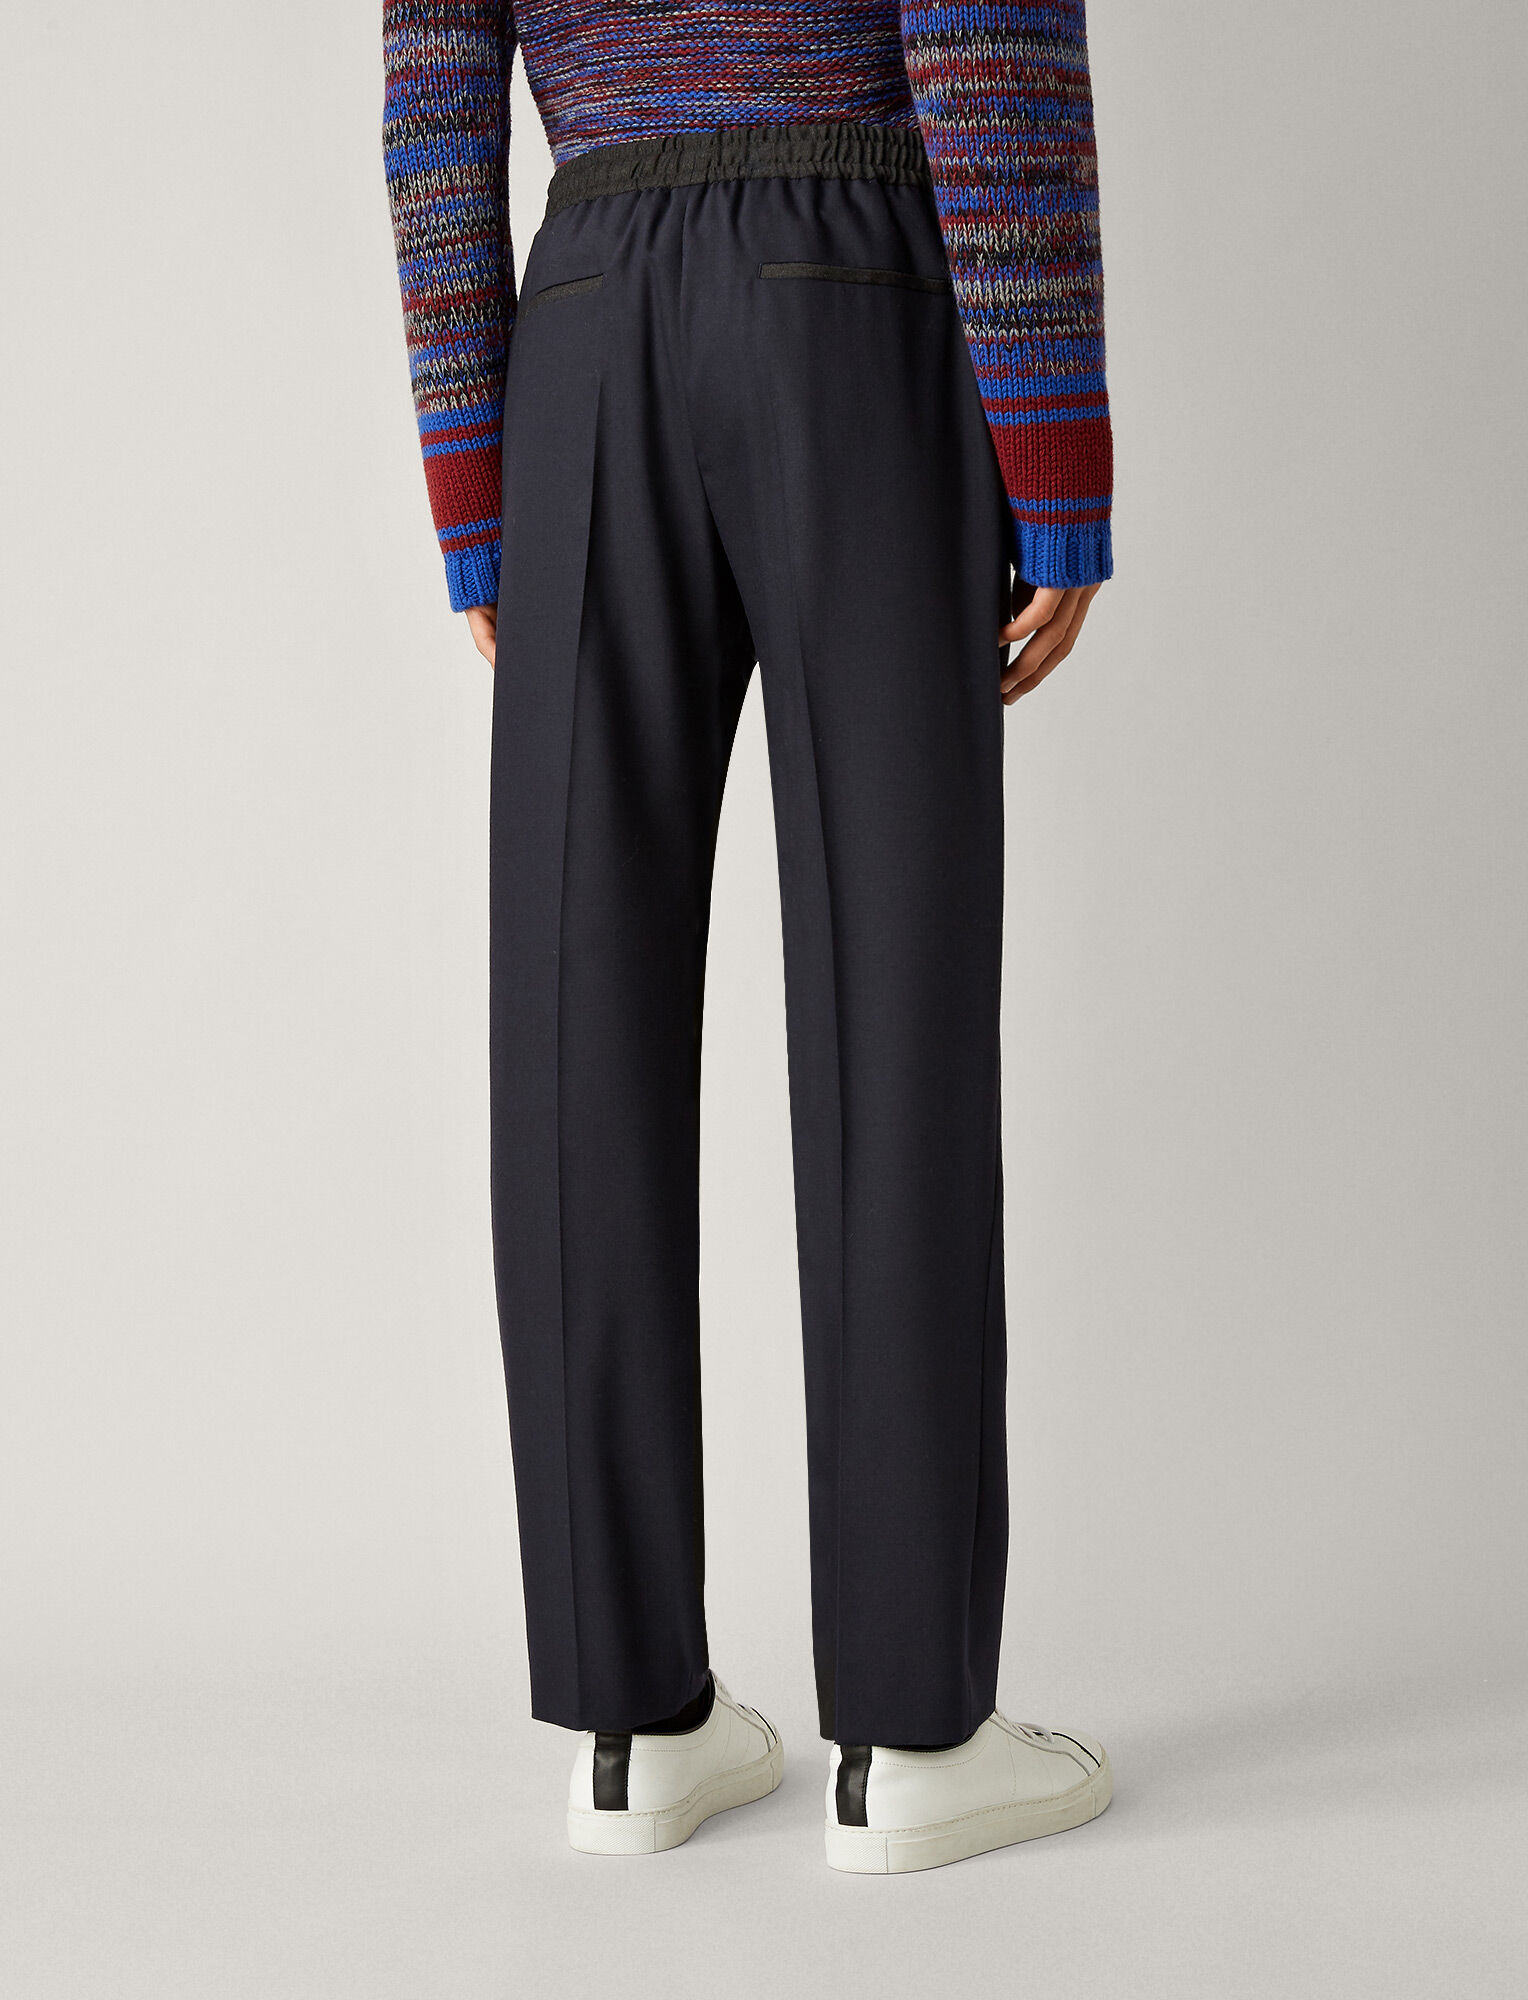 Joseph, Eugene Flannel Stretch Trousers, in NAVY